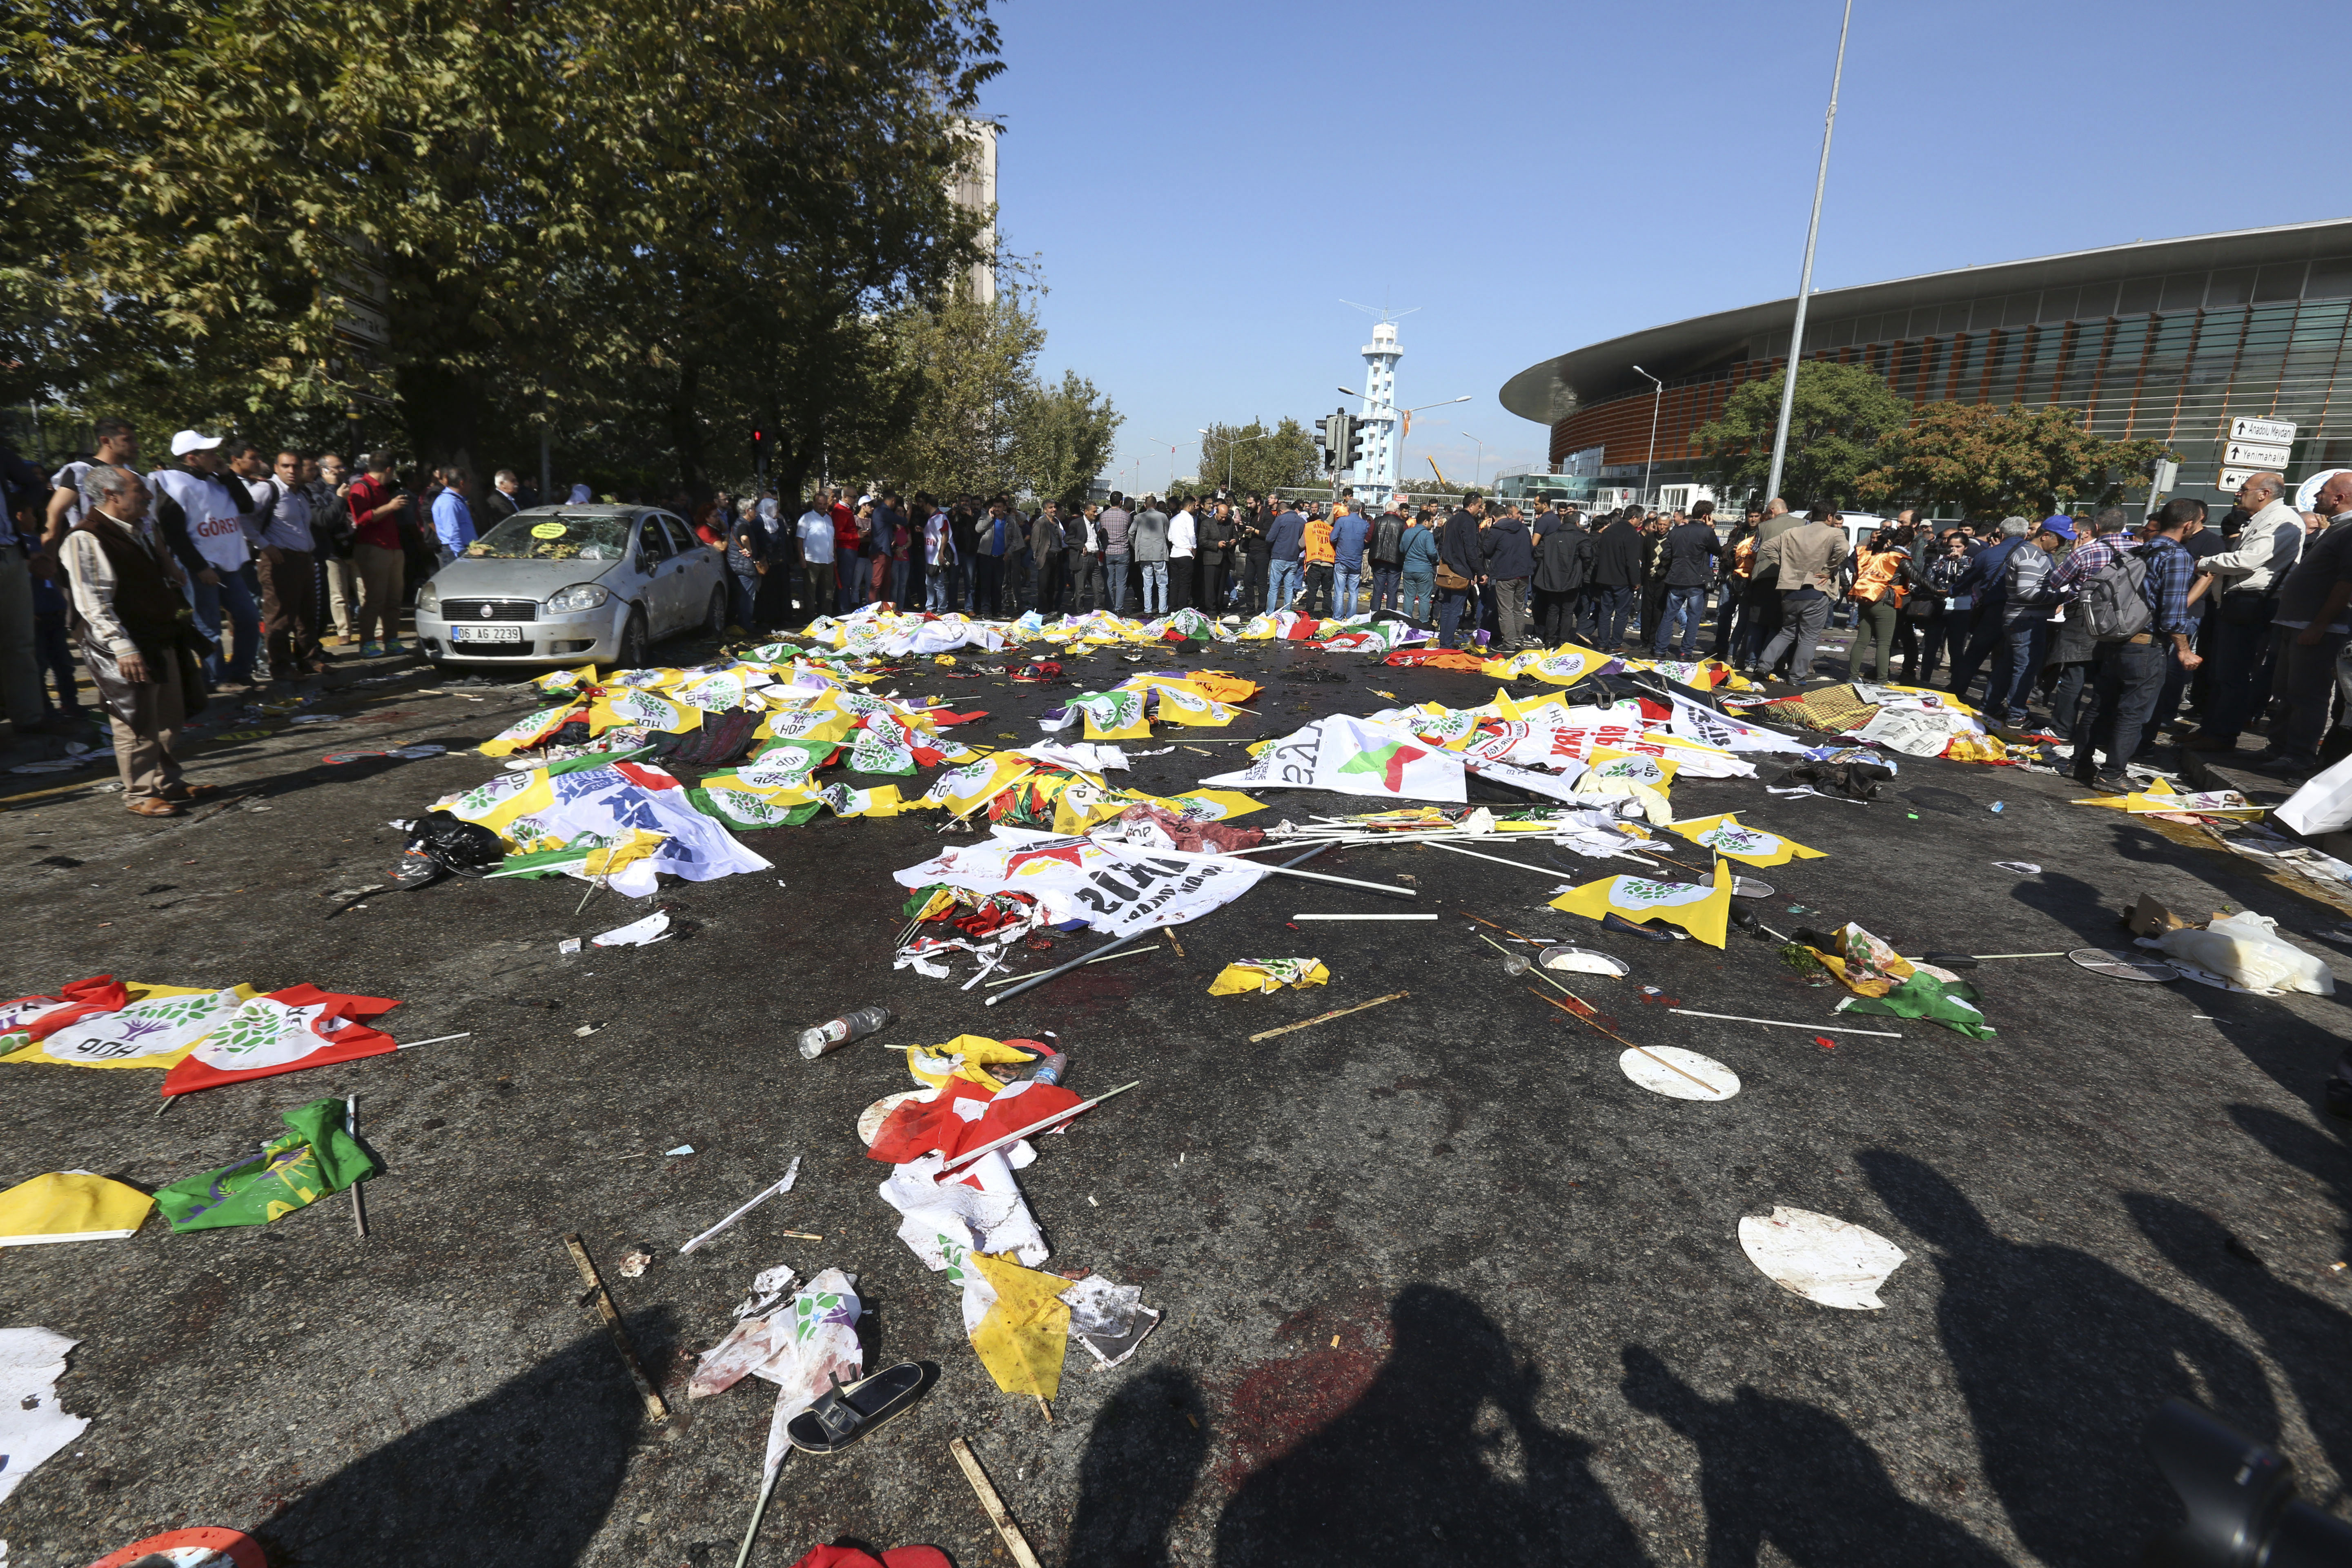 People surround the area where bodies of victims are covered with flags and banners at the site of an explosion in Ankara, Turkey, on Oct. 10, 2015.